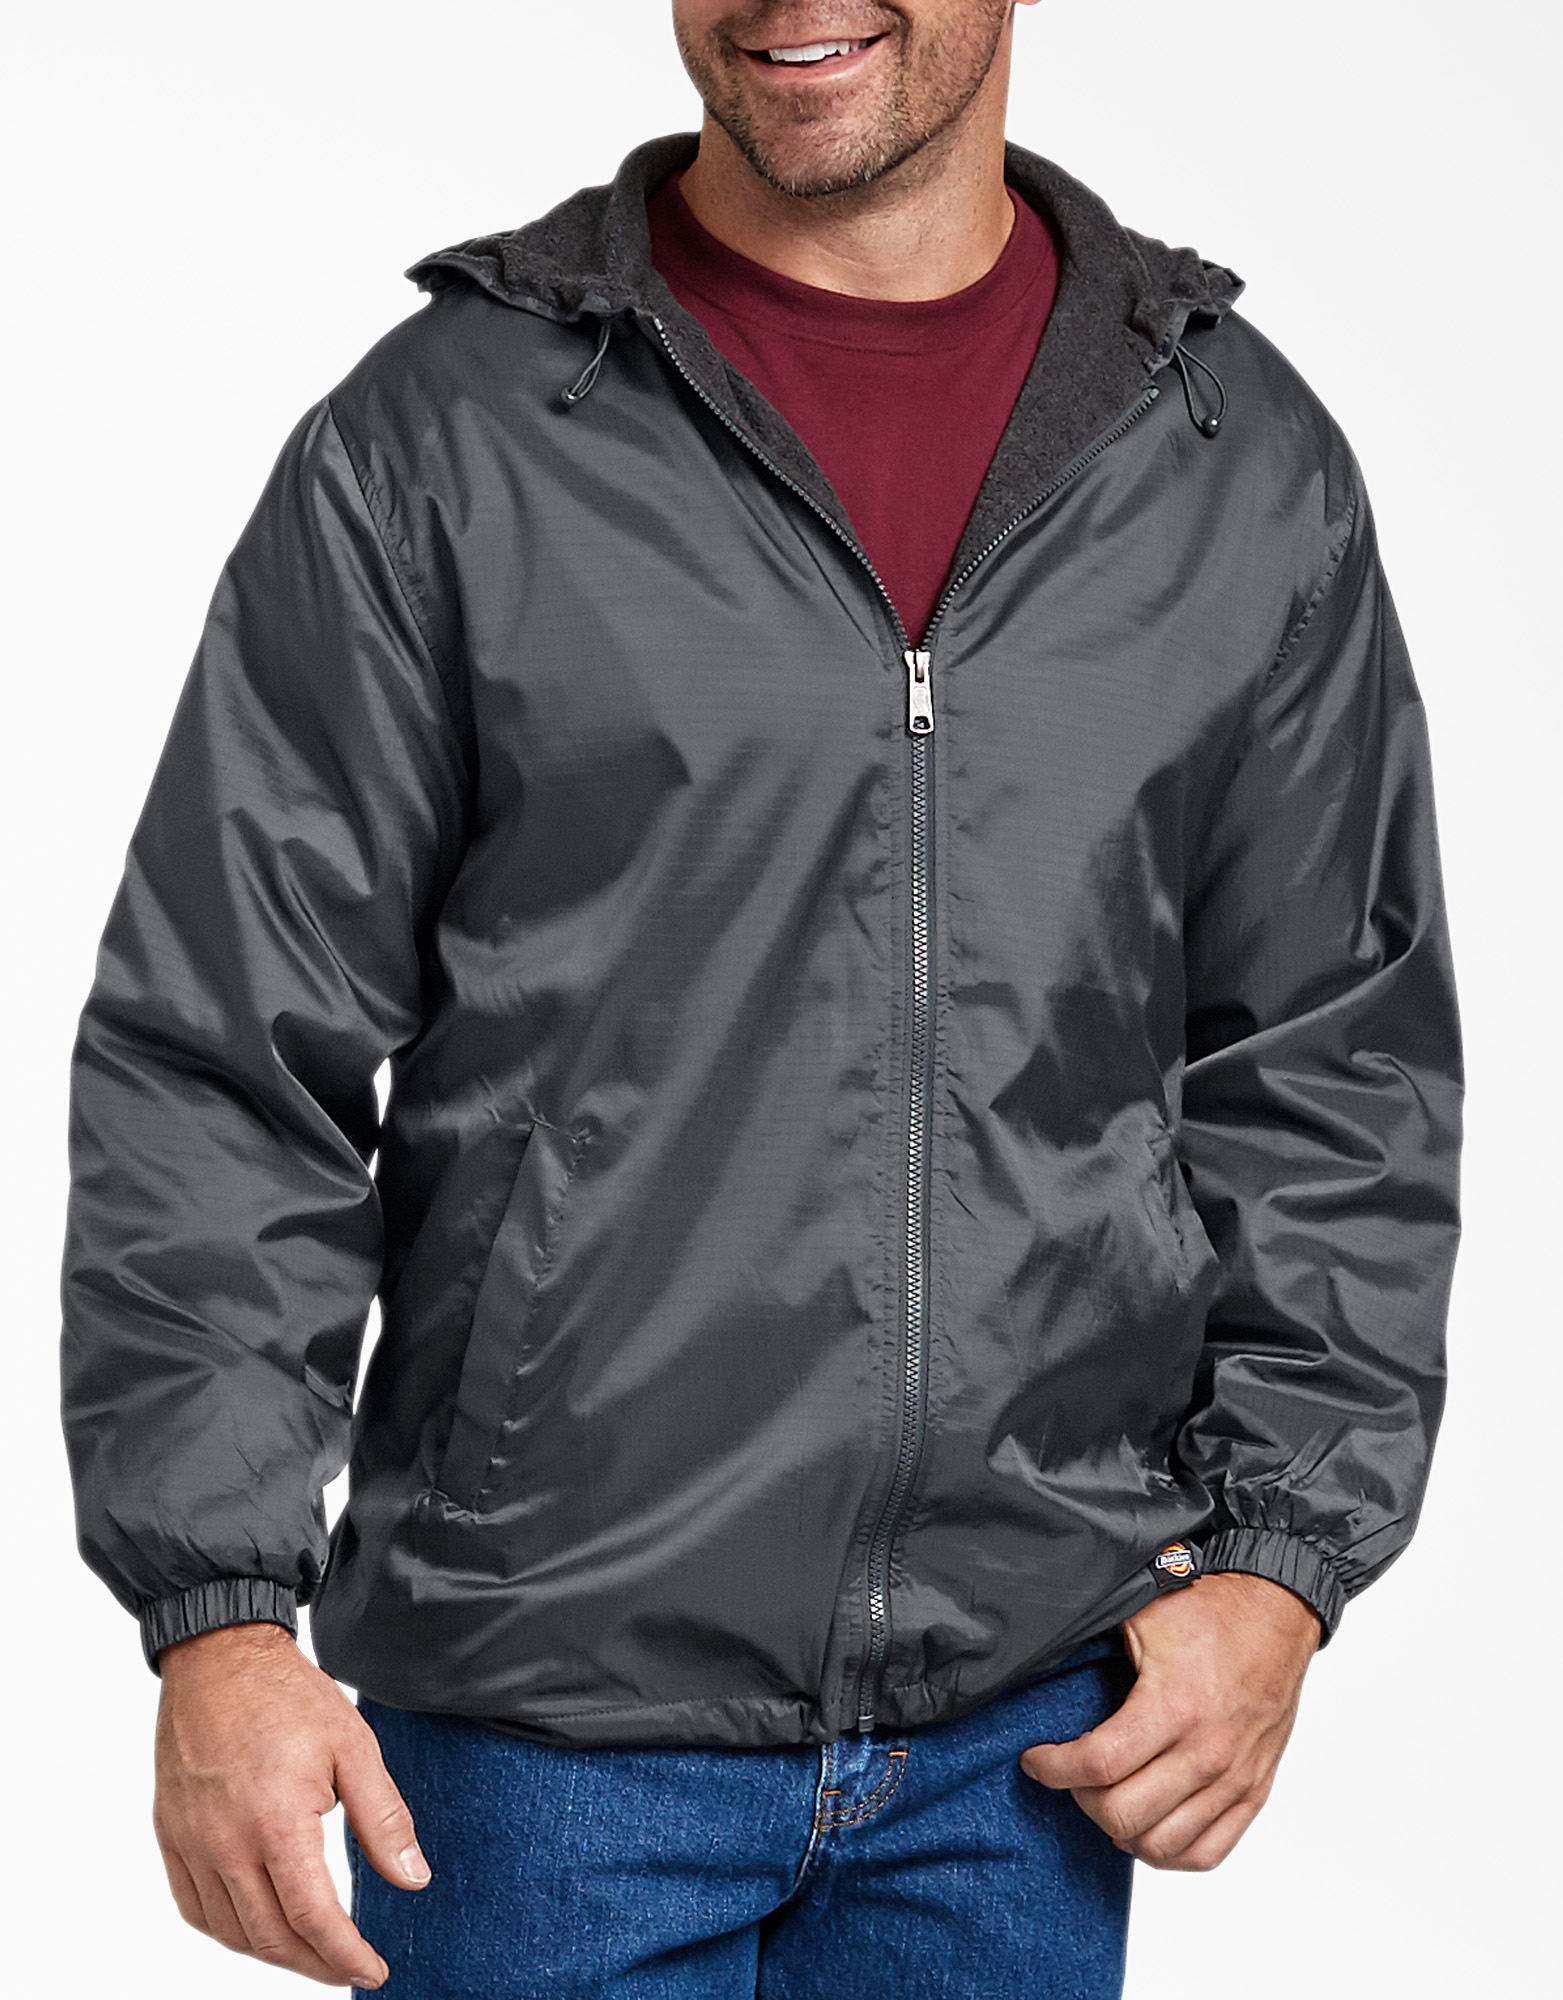 Fleece Lined Hooded Nylon Jacket - Charcoal Gray (CH)